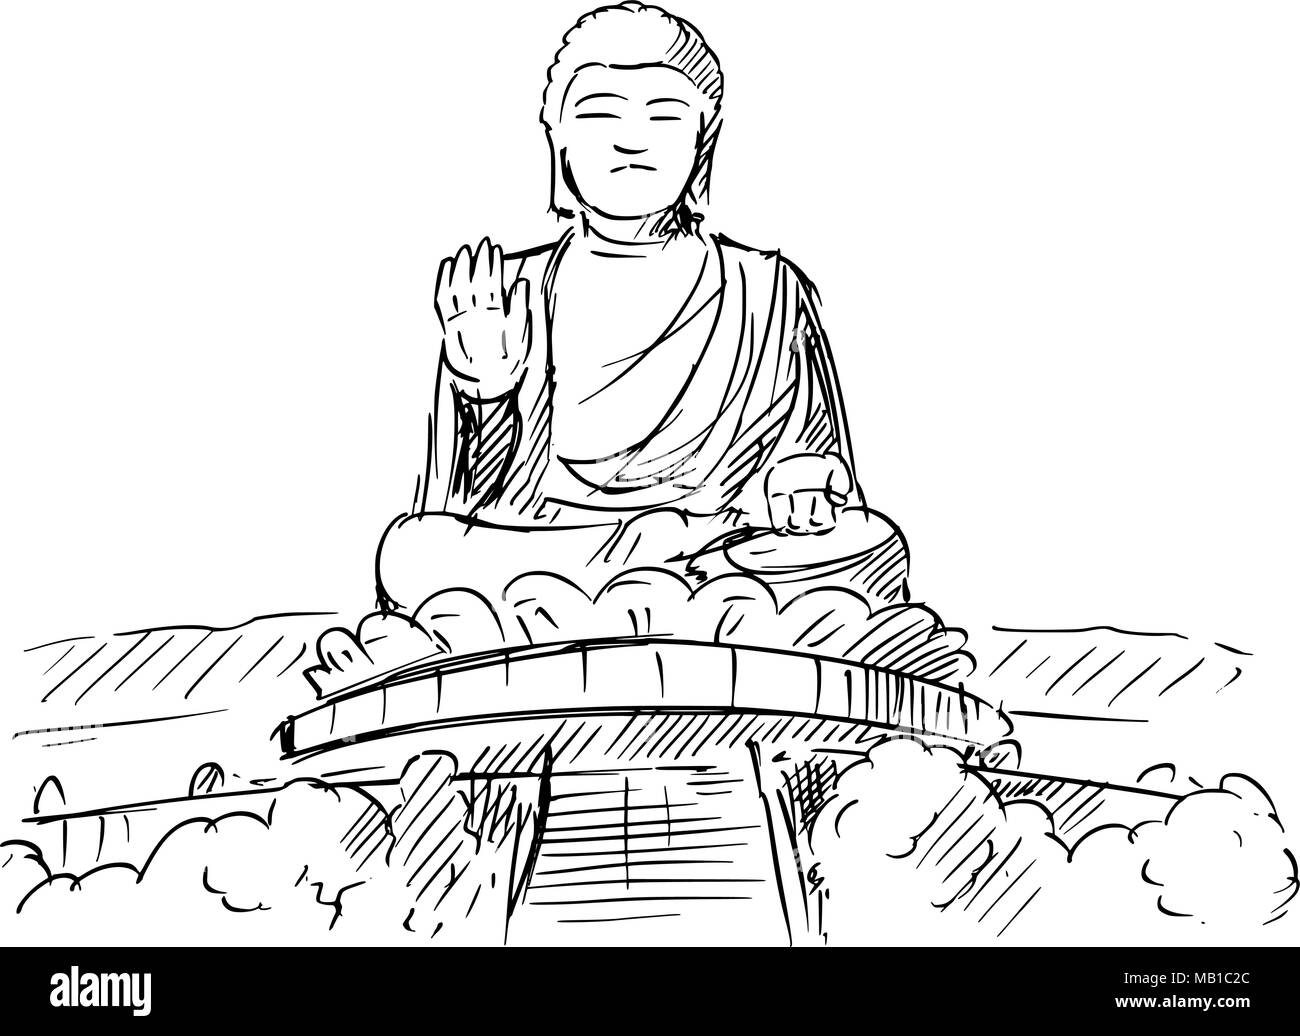 Cartoon Sketch of the Tian Tan or Big Buddha statue, Hong Kong - Stock Vector